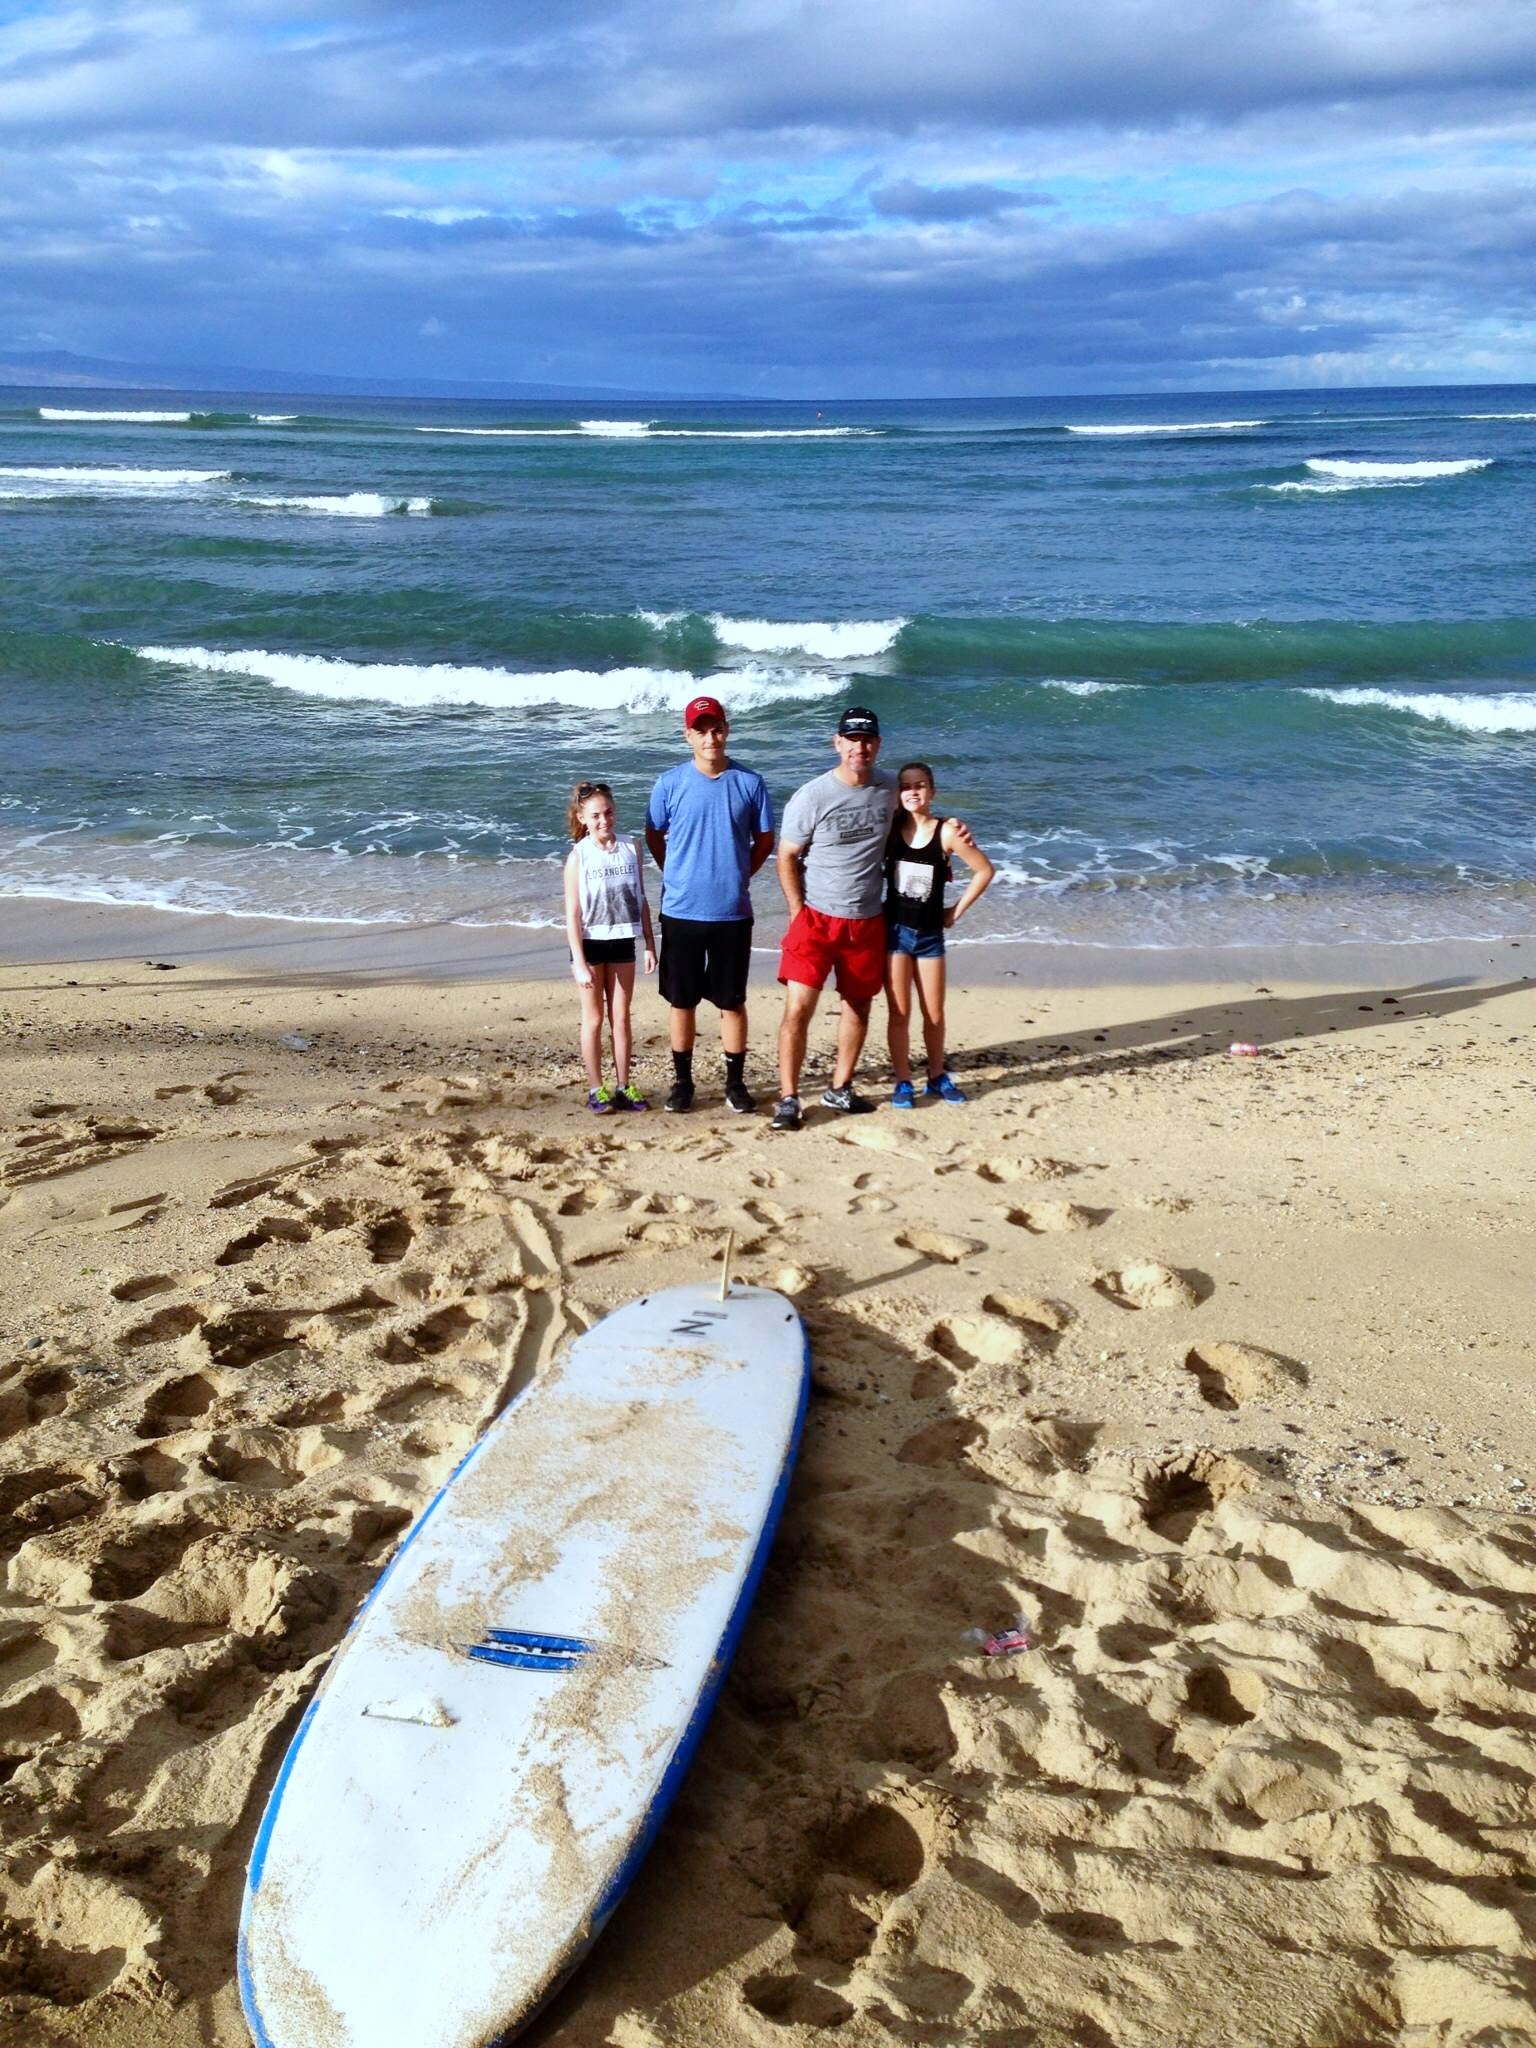 Our Top 10 Must Have Baby Items: Our Top 10 Maui Moments To Remember & Recommend